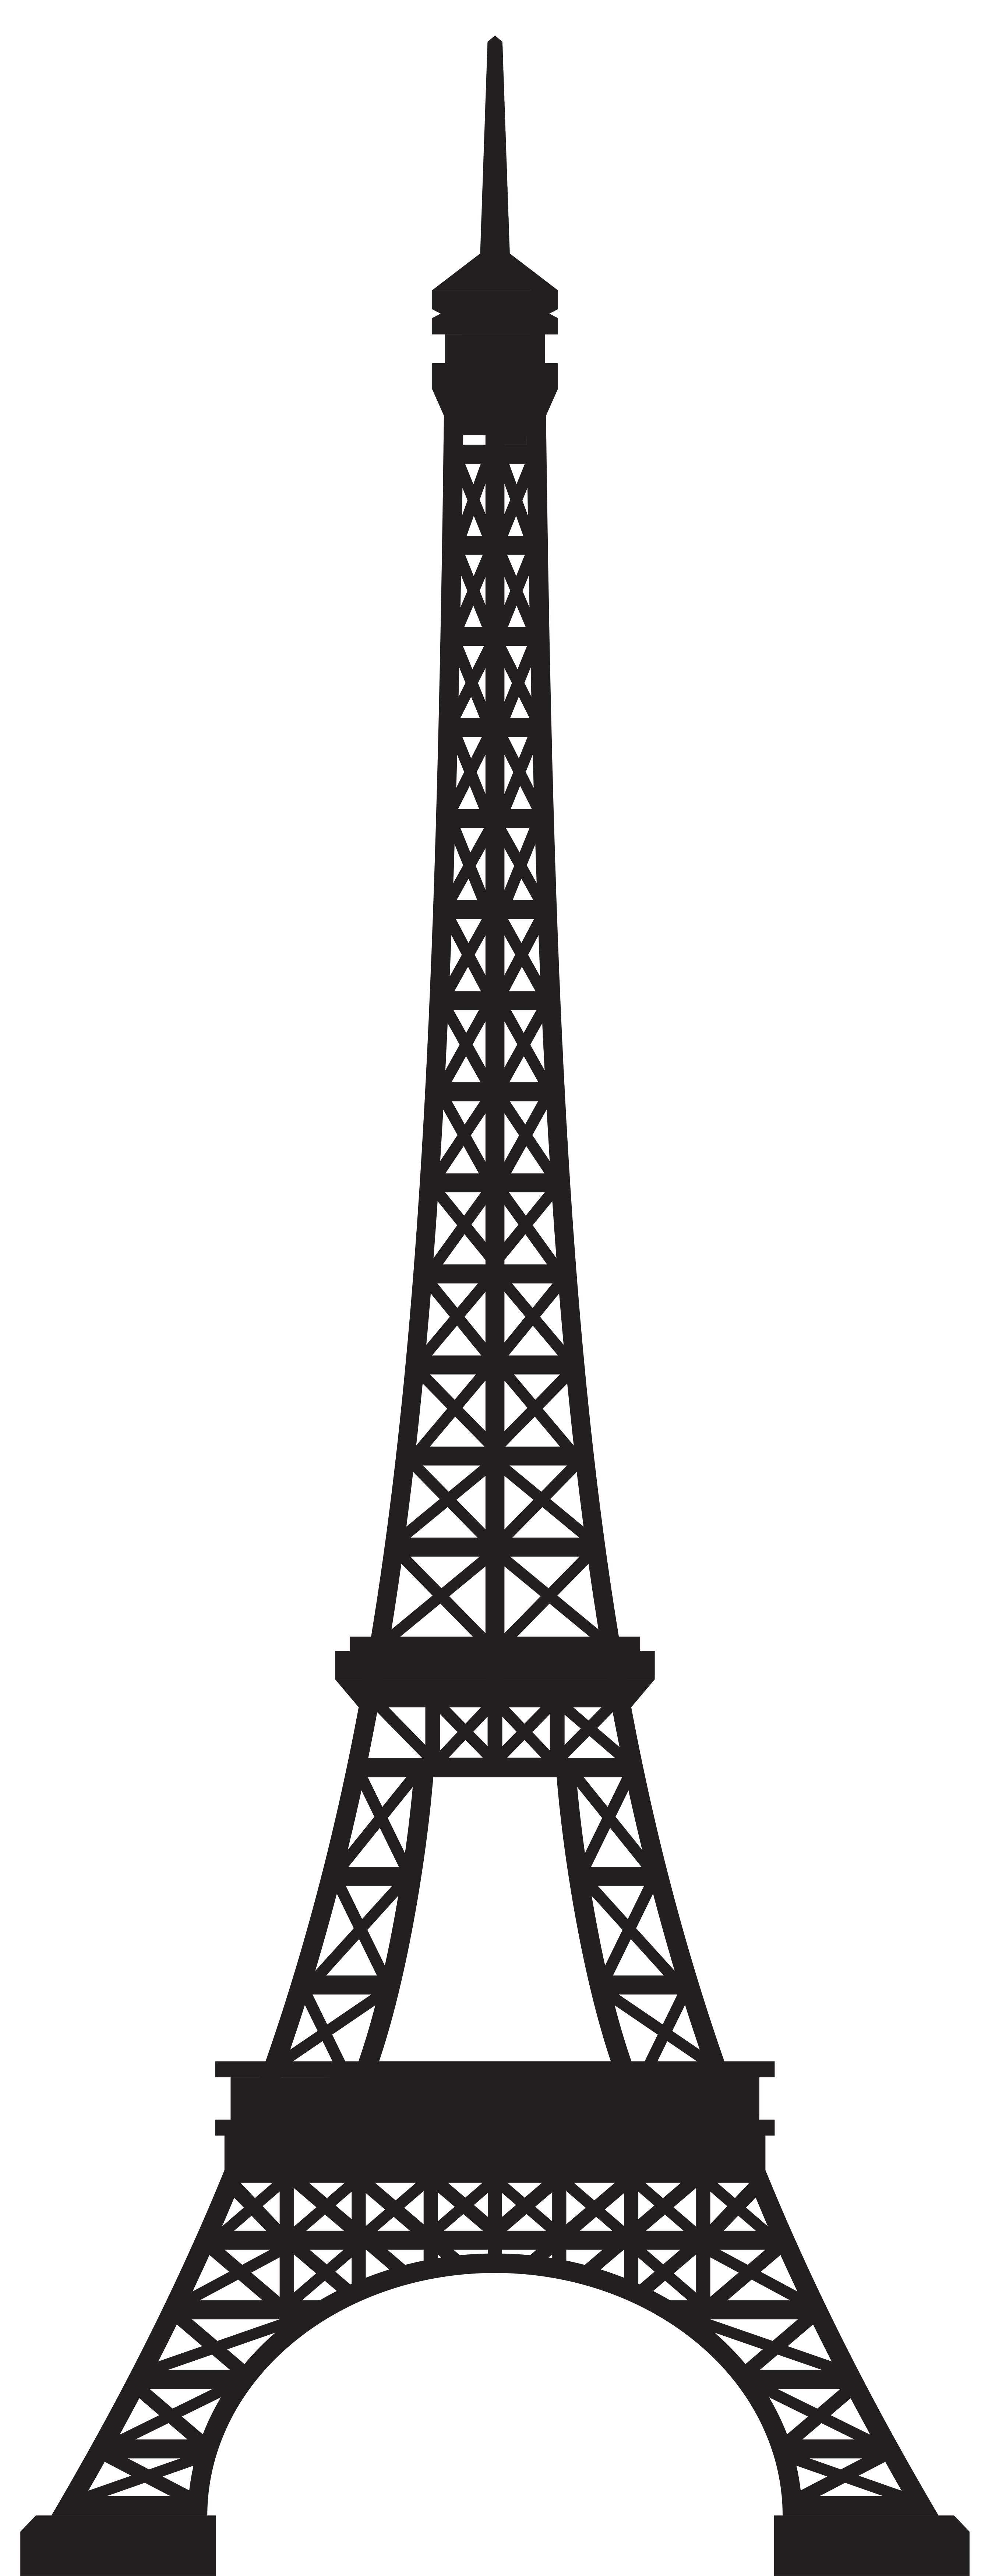 Eiffel tower silhouette png. Clip art image gallery